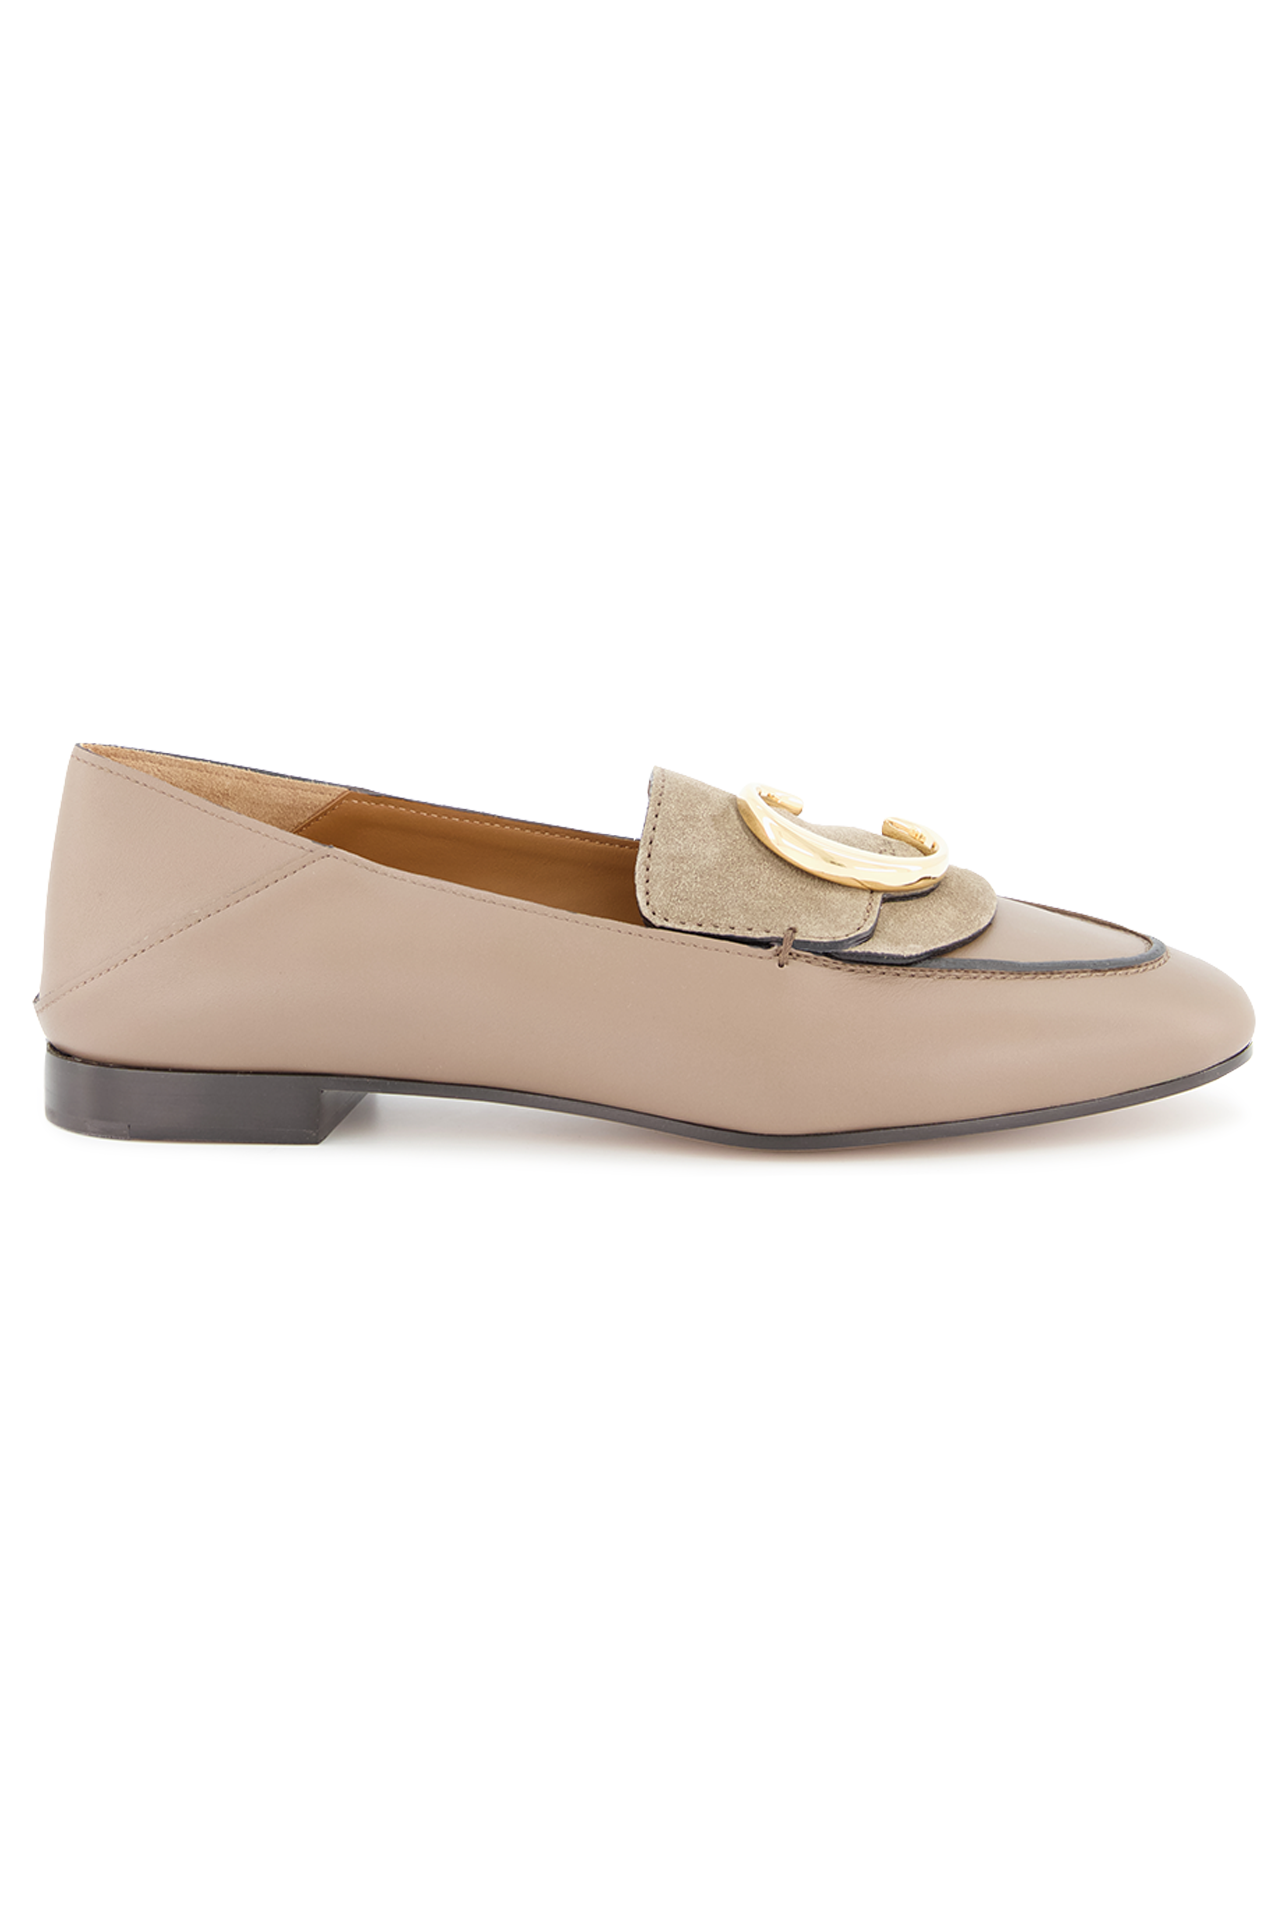 Side view image of Chloé C Loafer Motty Grey